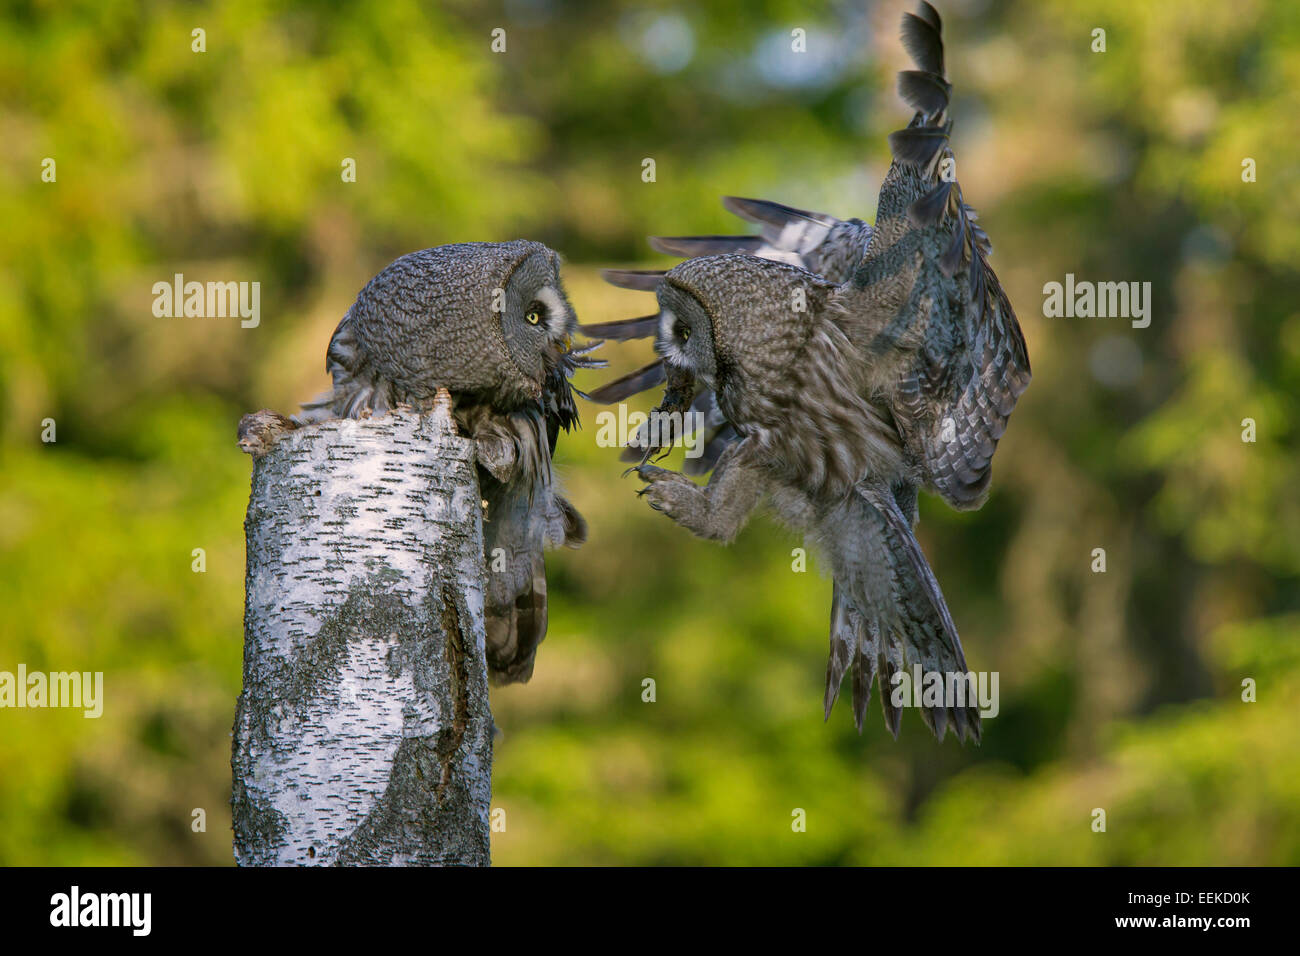 Great grey owl / great gray owl (Strix nebulosa) male bringing mouse to nesting female to feed the chicks in tree - Stock Image